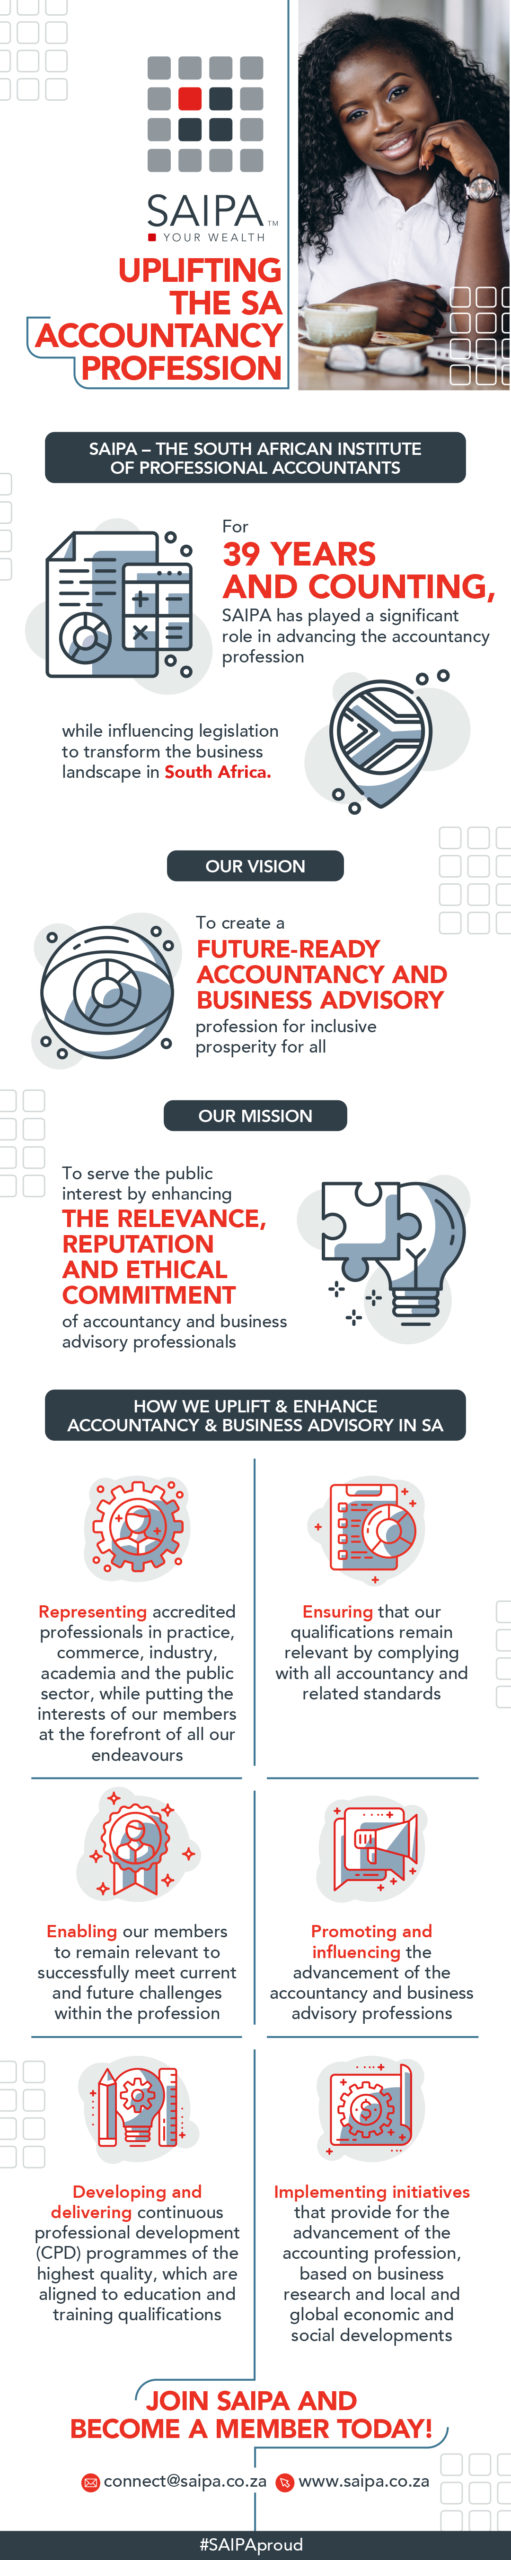 SAIPA membership growth campaign value proposition infographic